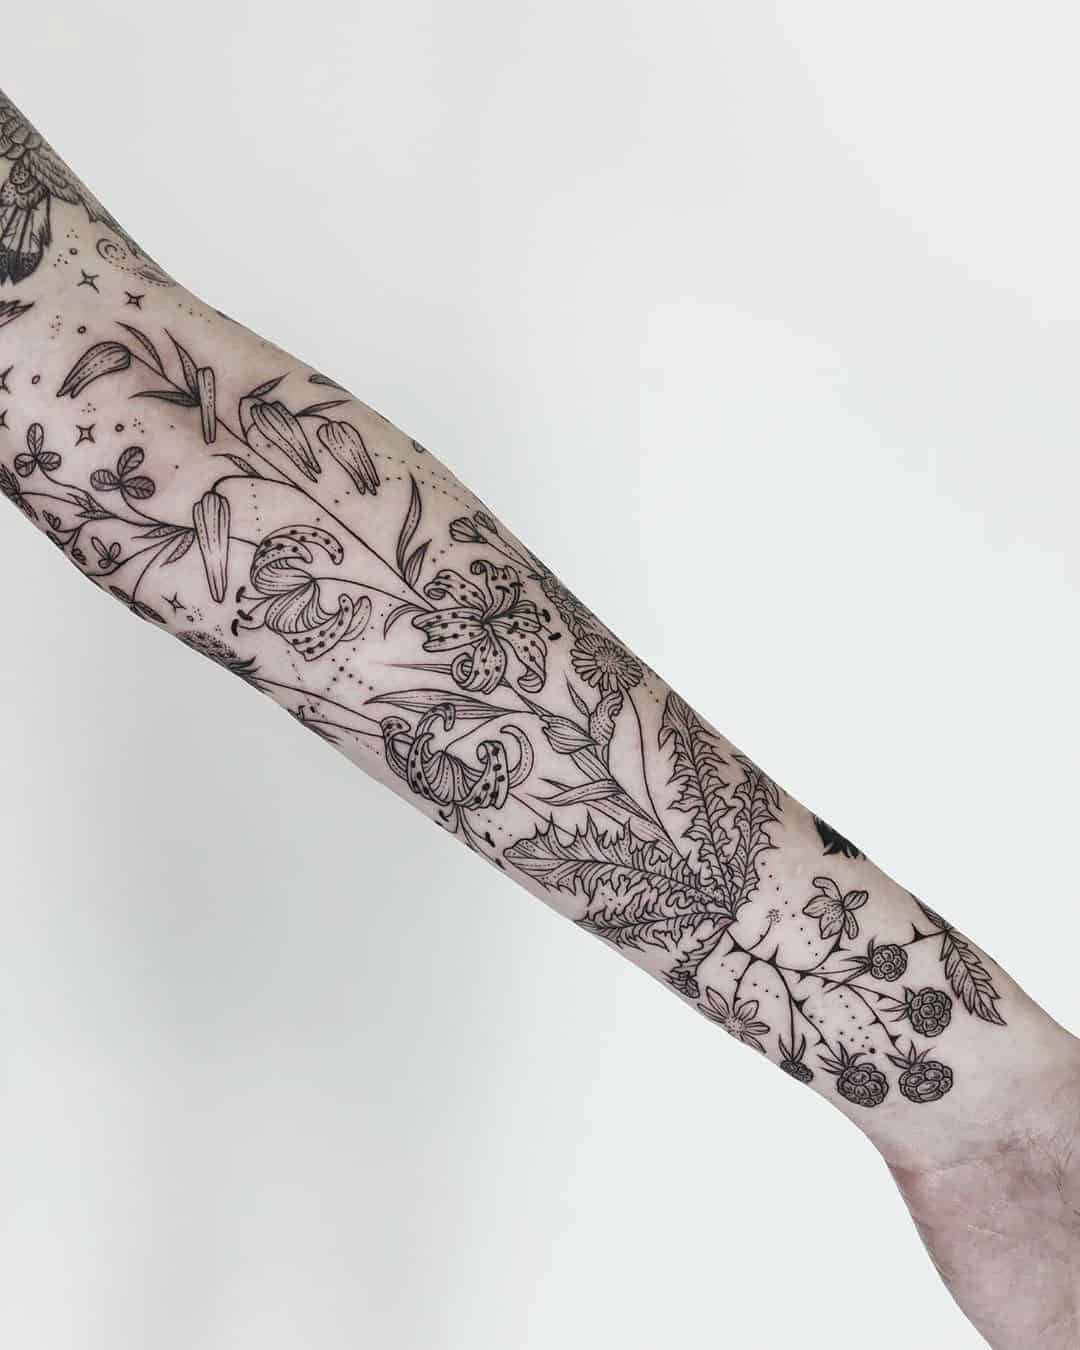 Plants, Alchemy, Space, and Animals in One Tattoo Symphony